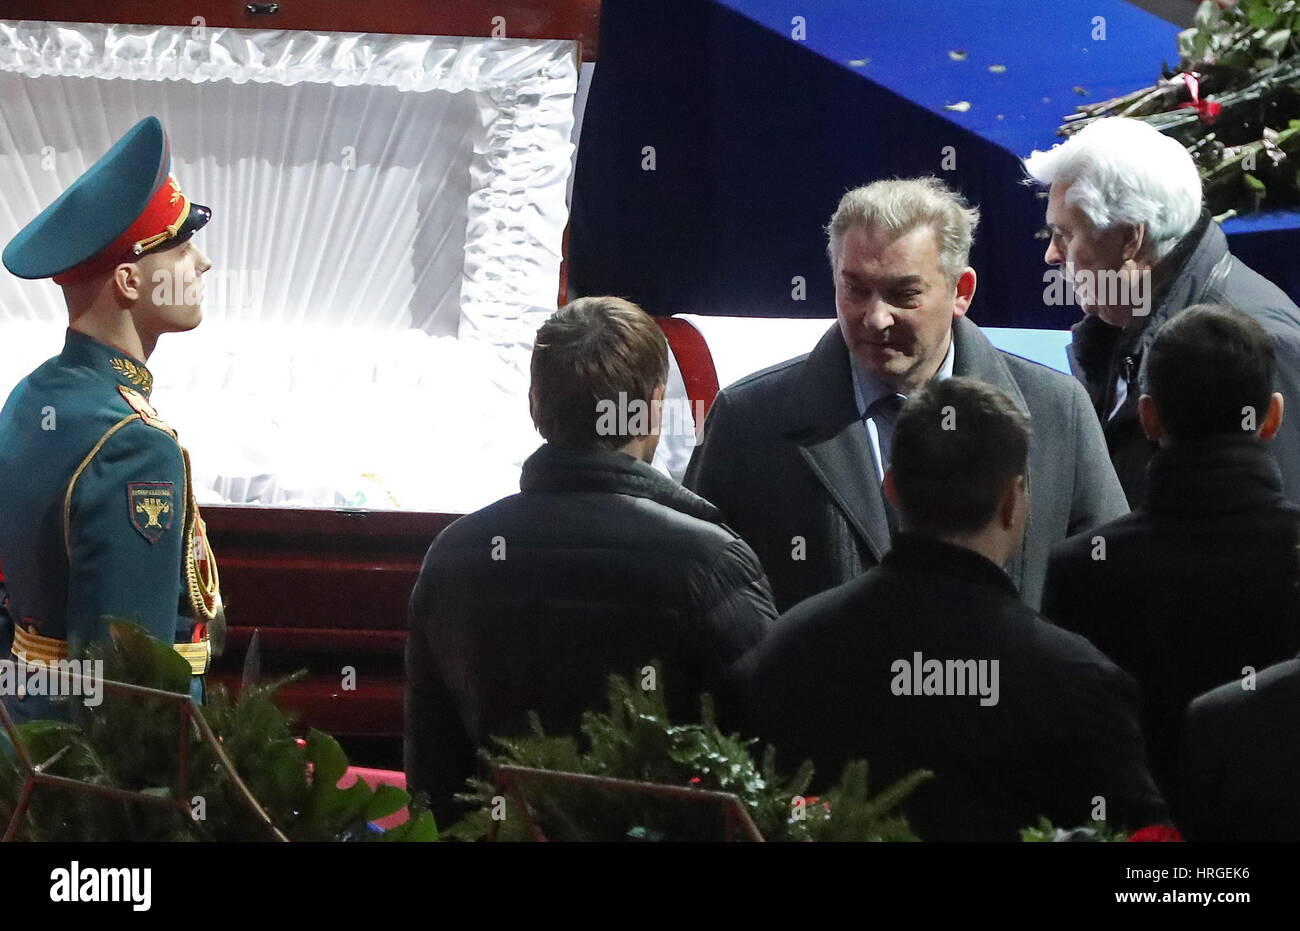 Moscow, Russia. 2nd Mar, 2017. Vladislav Tretiak (2nd R), former goaltender with the Soviet national ice hockey - Stock Image